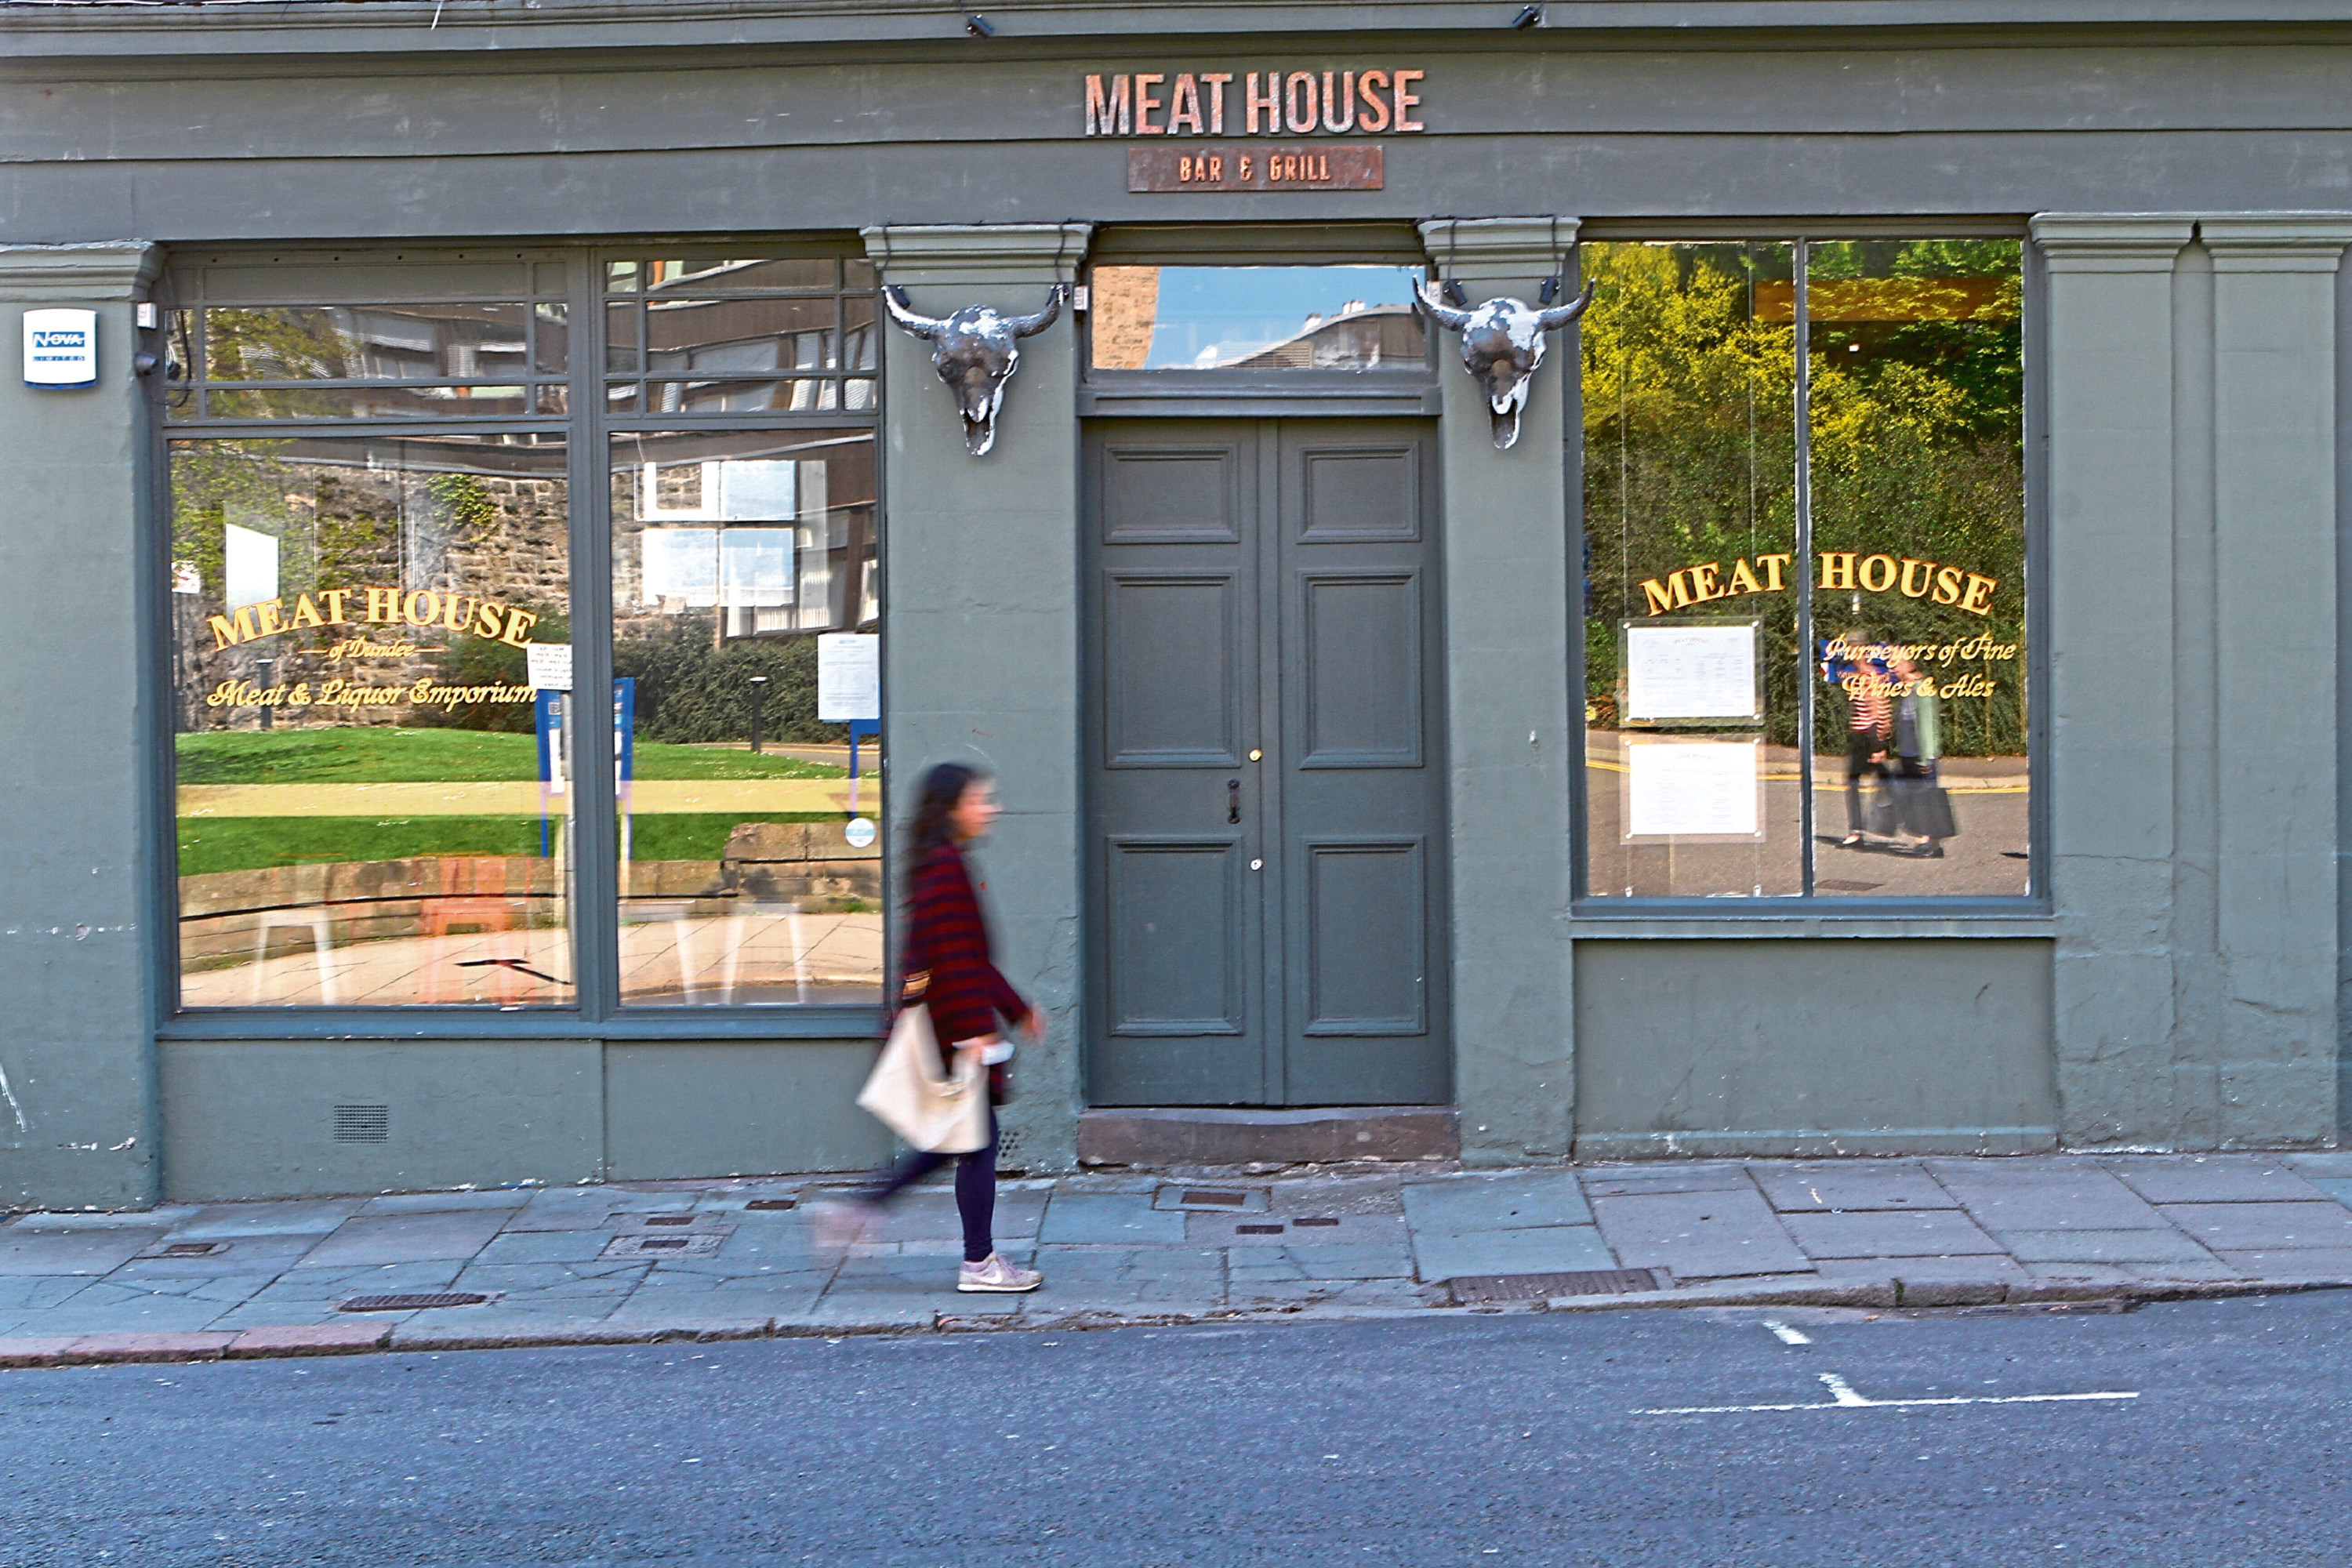 The former Meat House restaurant on Perth Road, which has been closed for several weeks.